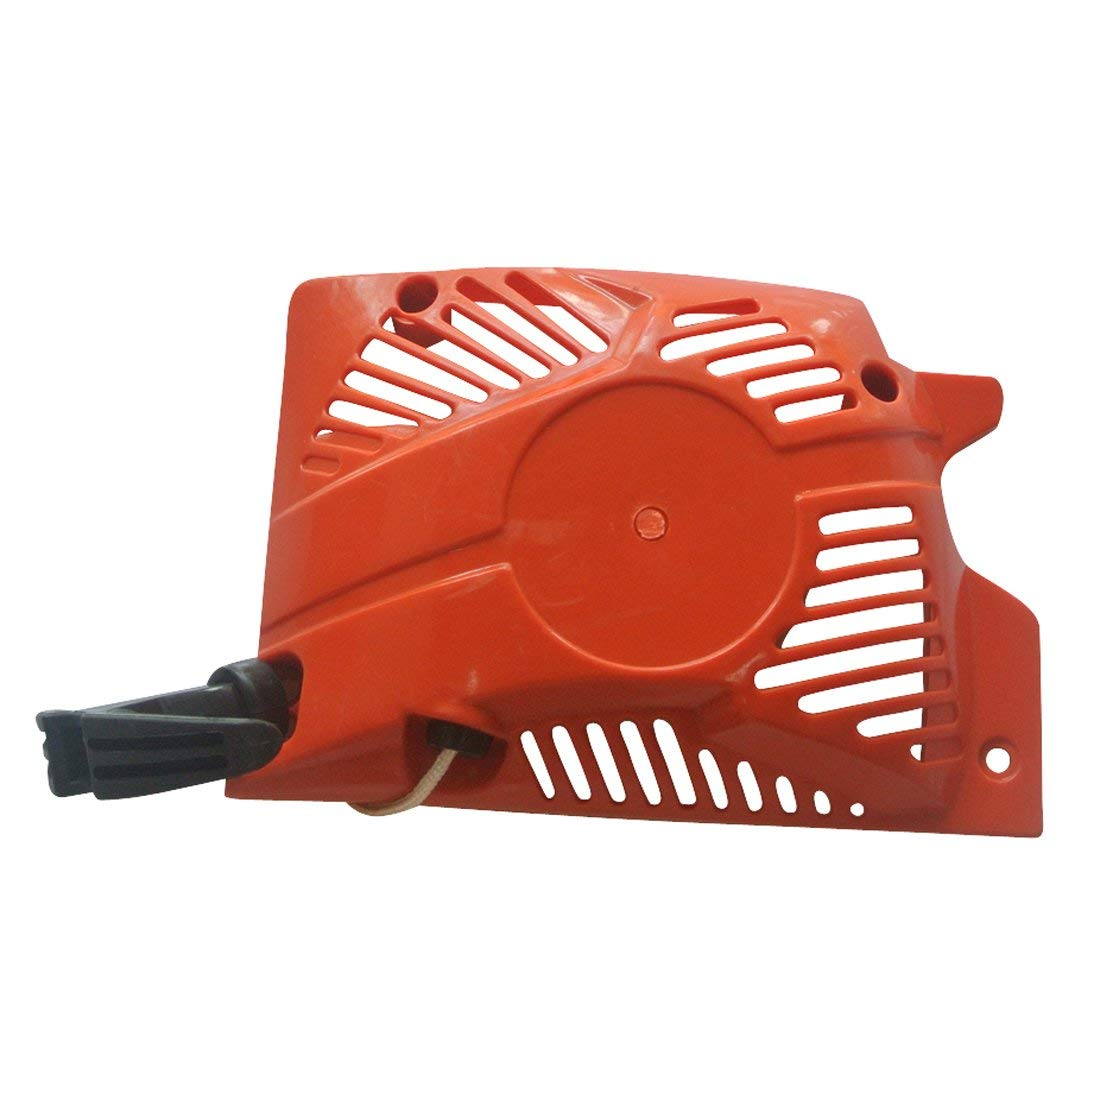 JRL Recoil Pull Start Starter Fit Chinese 45cc 52cc 58cc 4500 5200 5800 Chainsaw